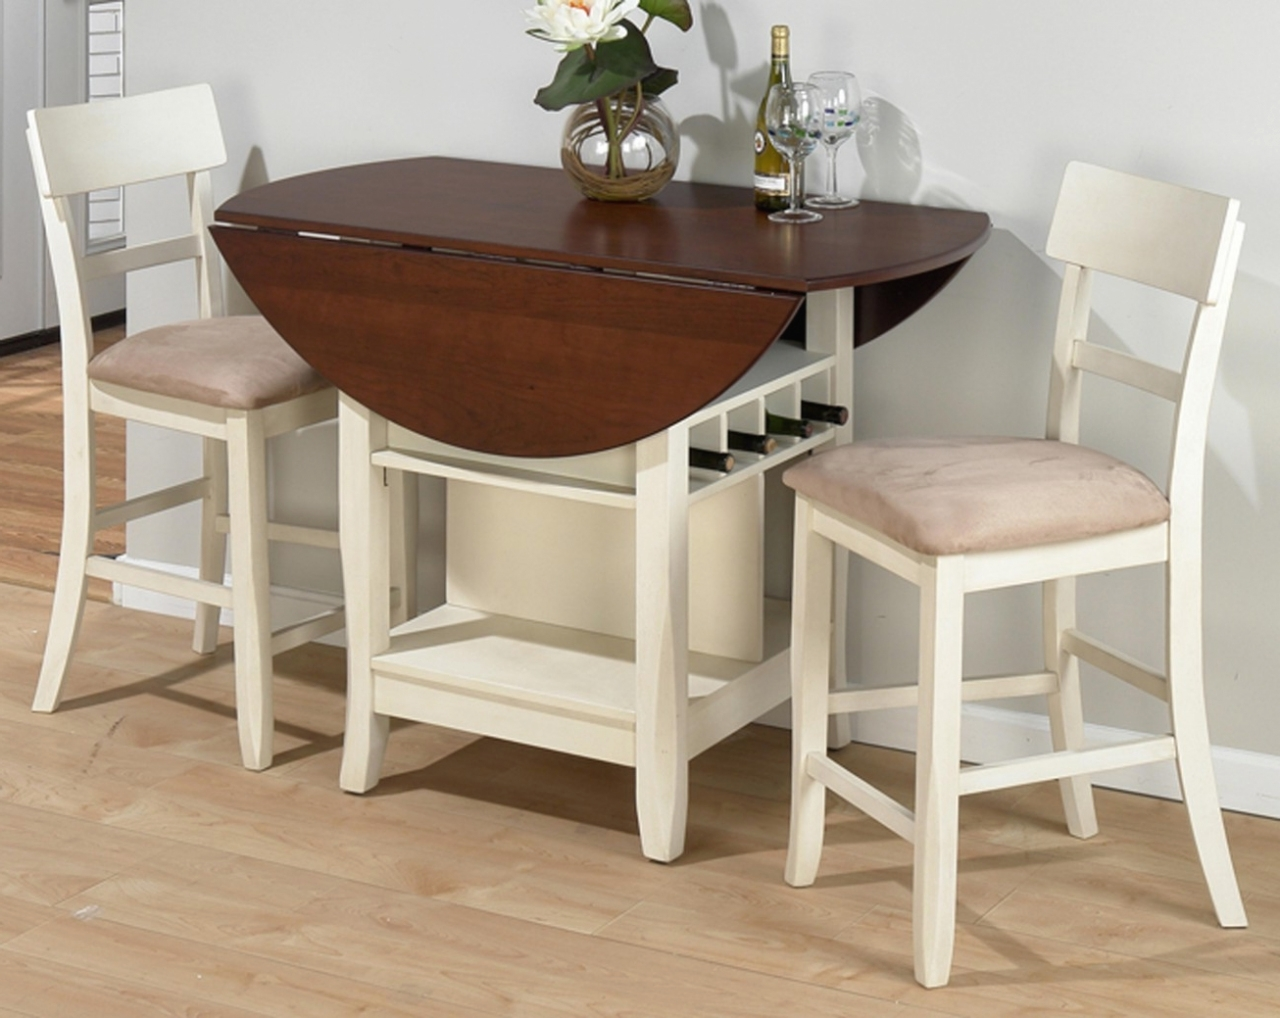 Dining: Fantastic Drop Leaf Dining Table For Small Spaces — Cole Intended For Favorite Two Person Dining Tables (View 4 of 25)